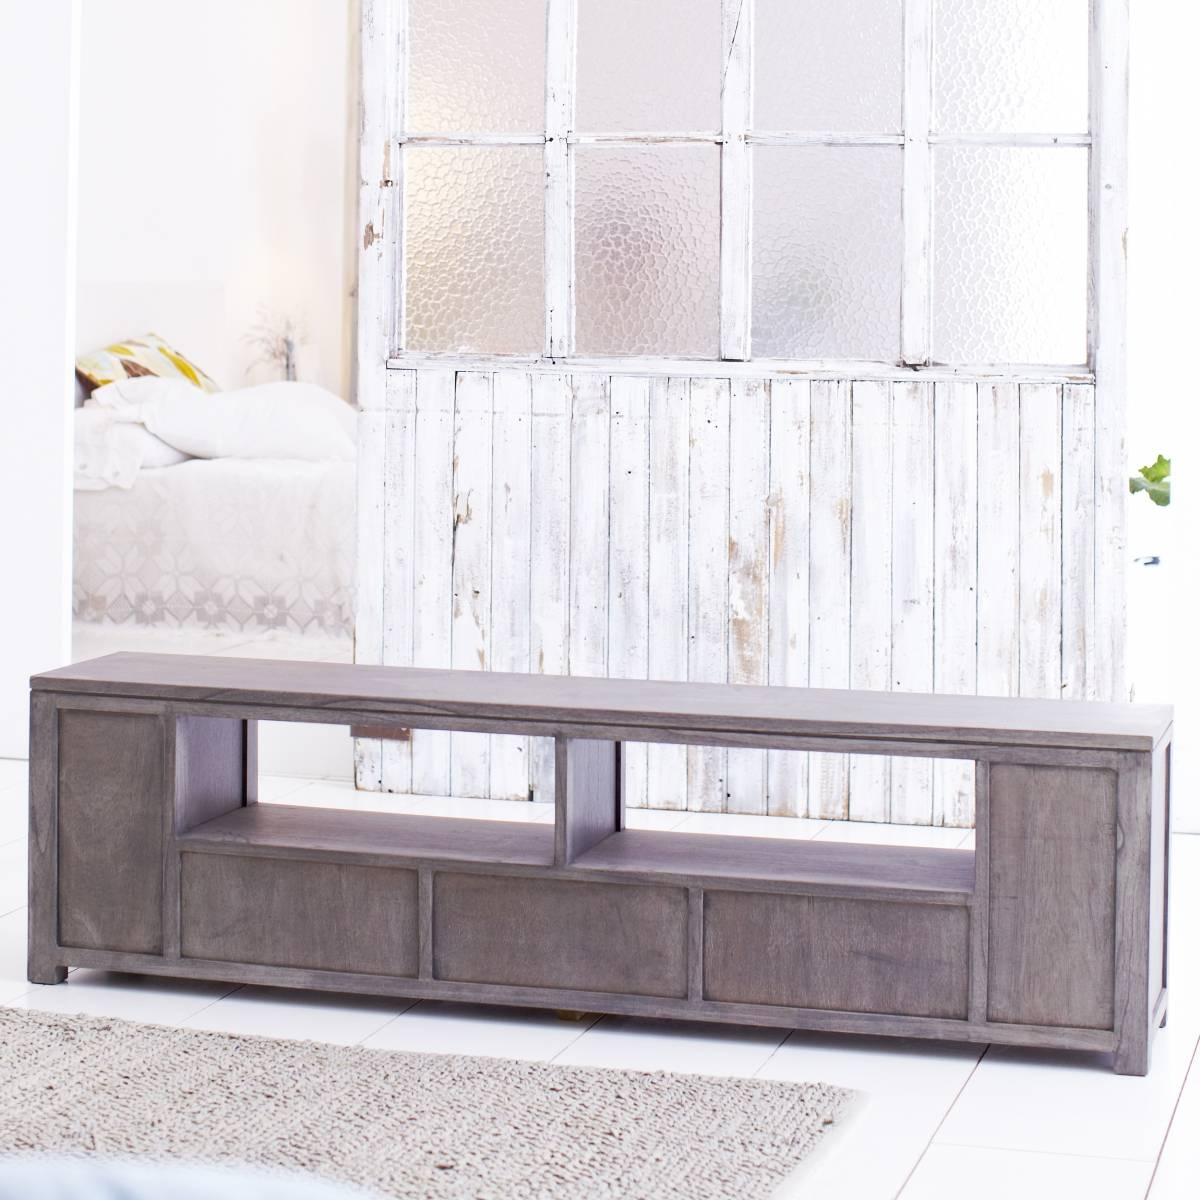 Solid Grey Tv Stand : How To Make Grey Tv Stand – Indoor & Outdoor with regard to Grey Wood Tv Stands (Image 8 of 15)